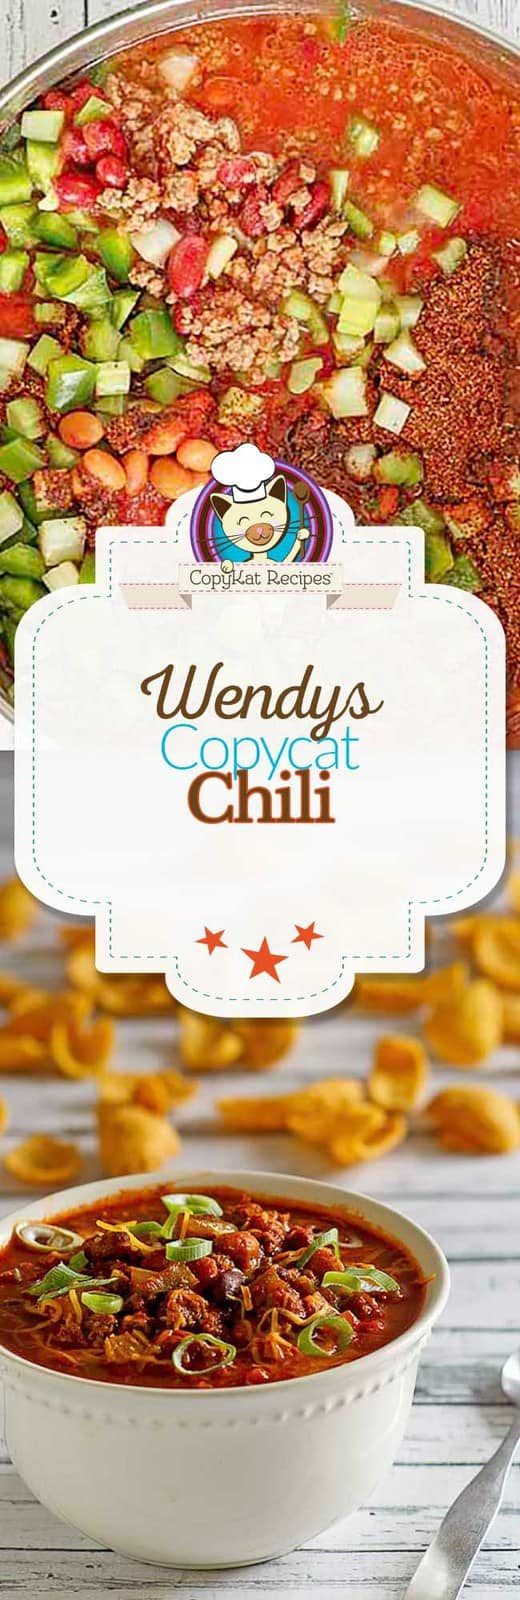 You can recreate copycat Wendy's Chili at home with this easy recipe. #copycat #Wendys #soup #stovetop #seasoning #recipe